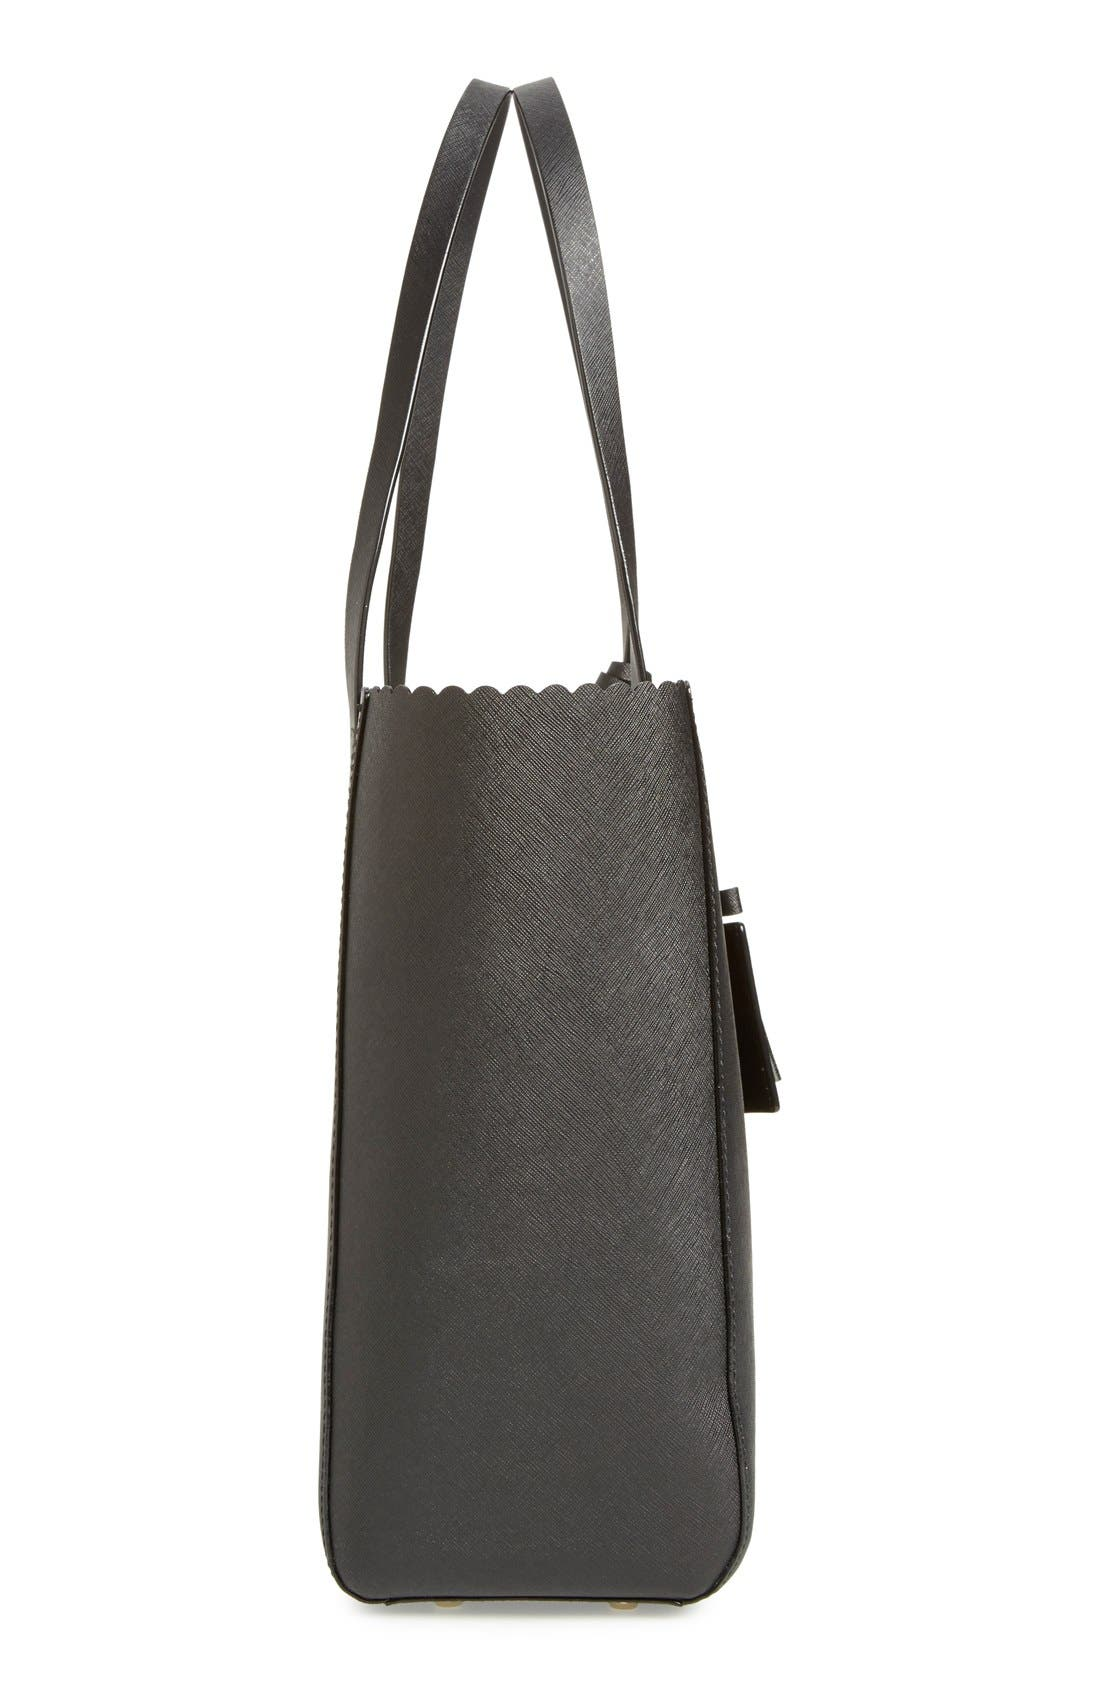 KATE SPADE NEW YORK,                             'cape drive - hallie' scalloped saffiano leather tote,                             Alternate thumbnail 6, color,                             002